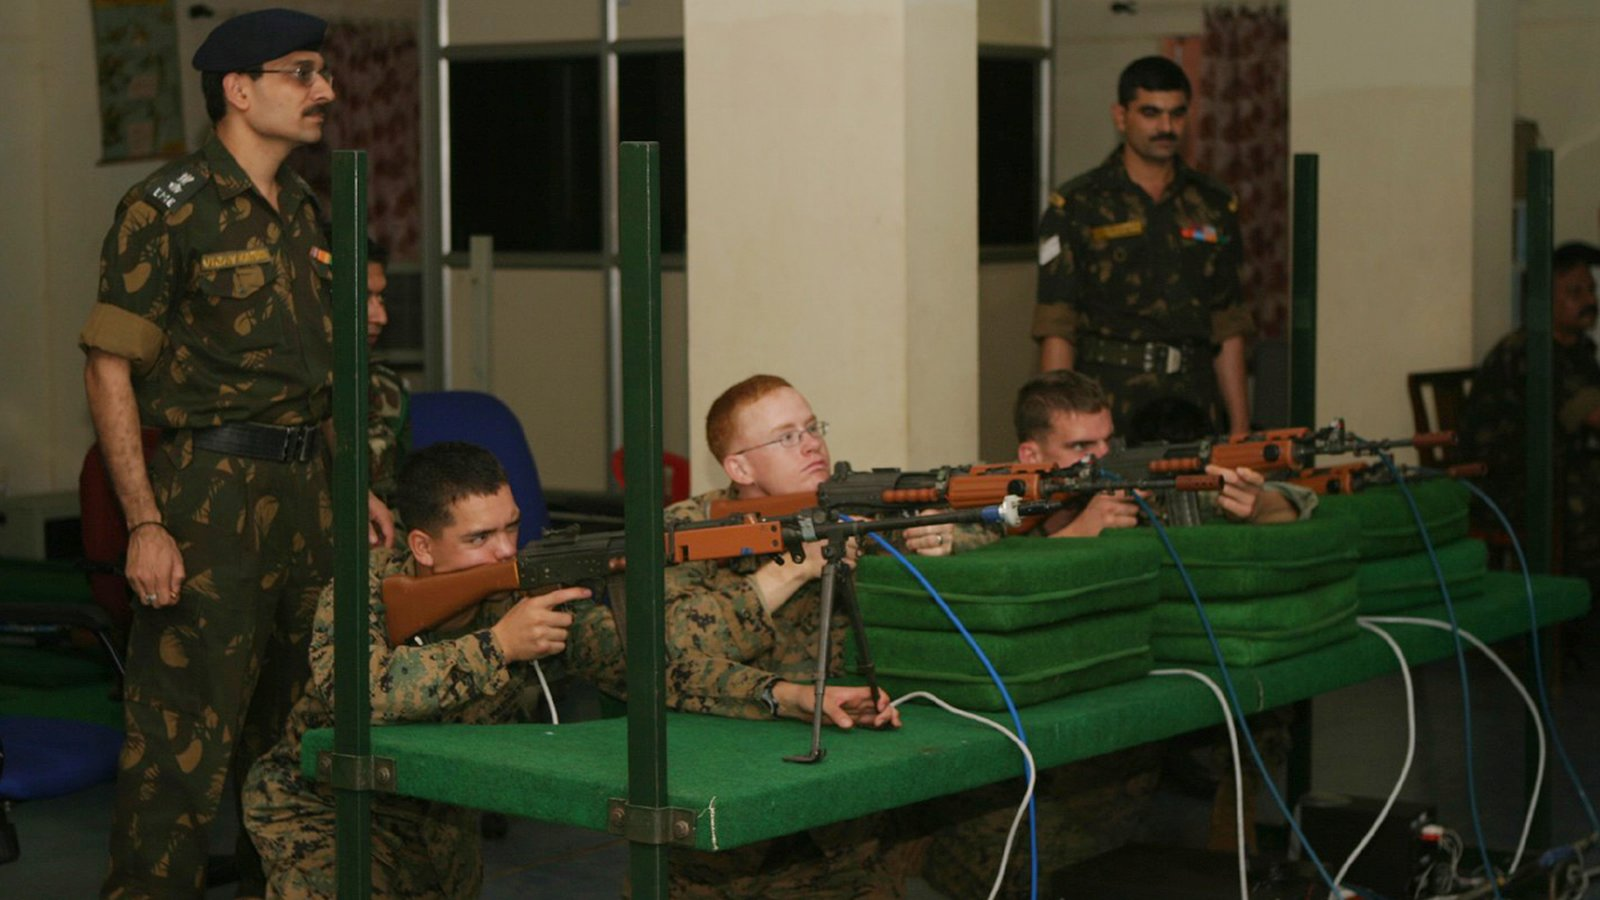 Indian Army - Firearms Simulator - 01